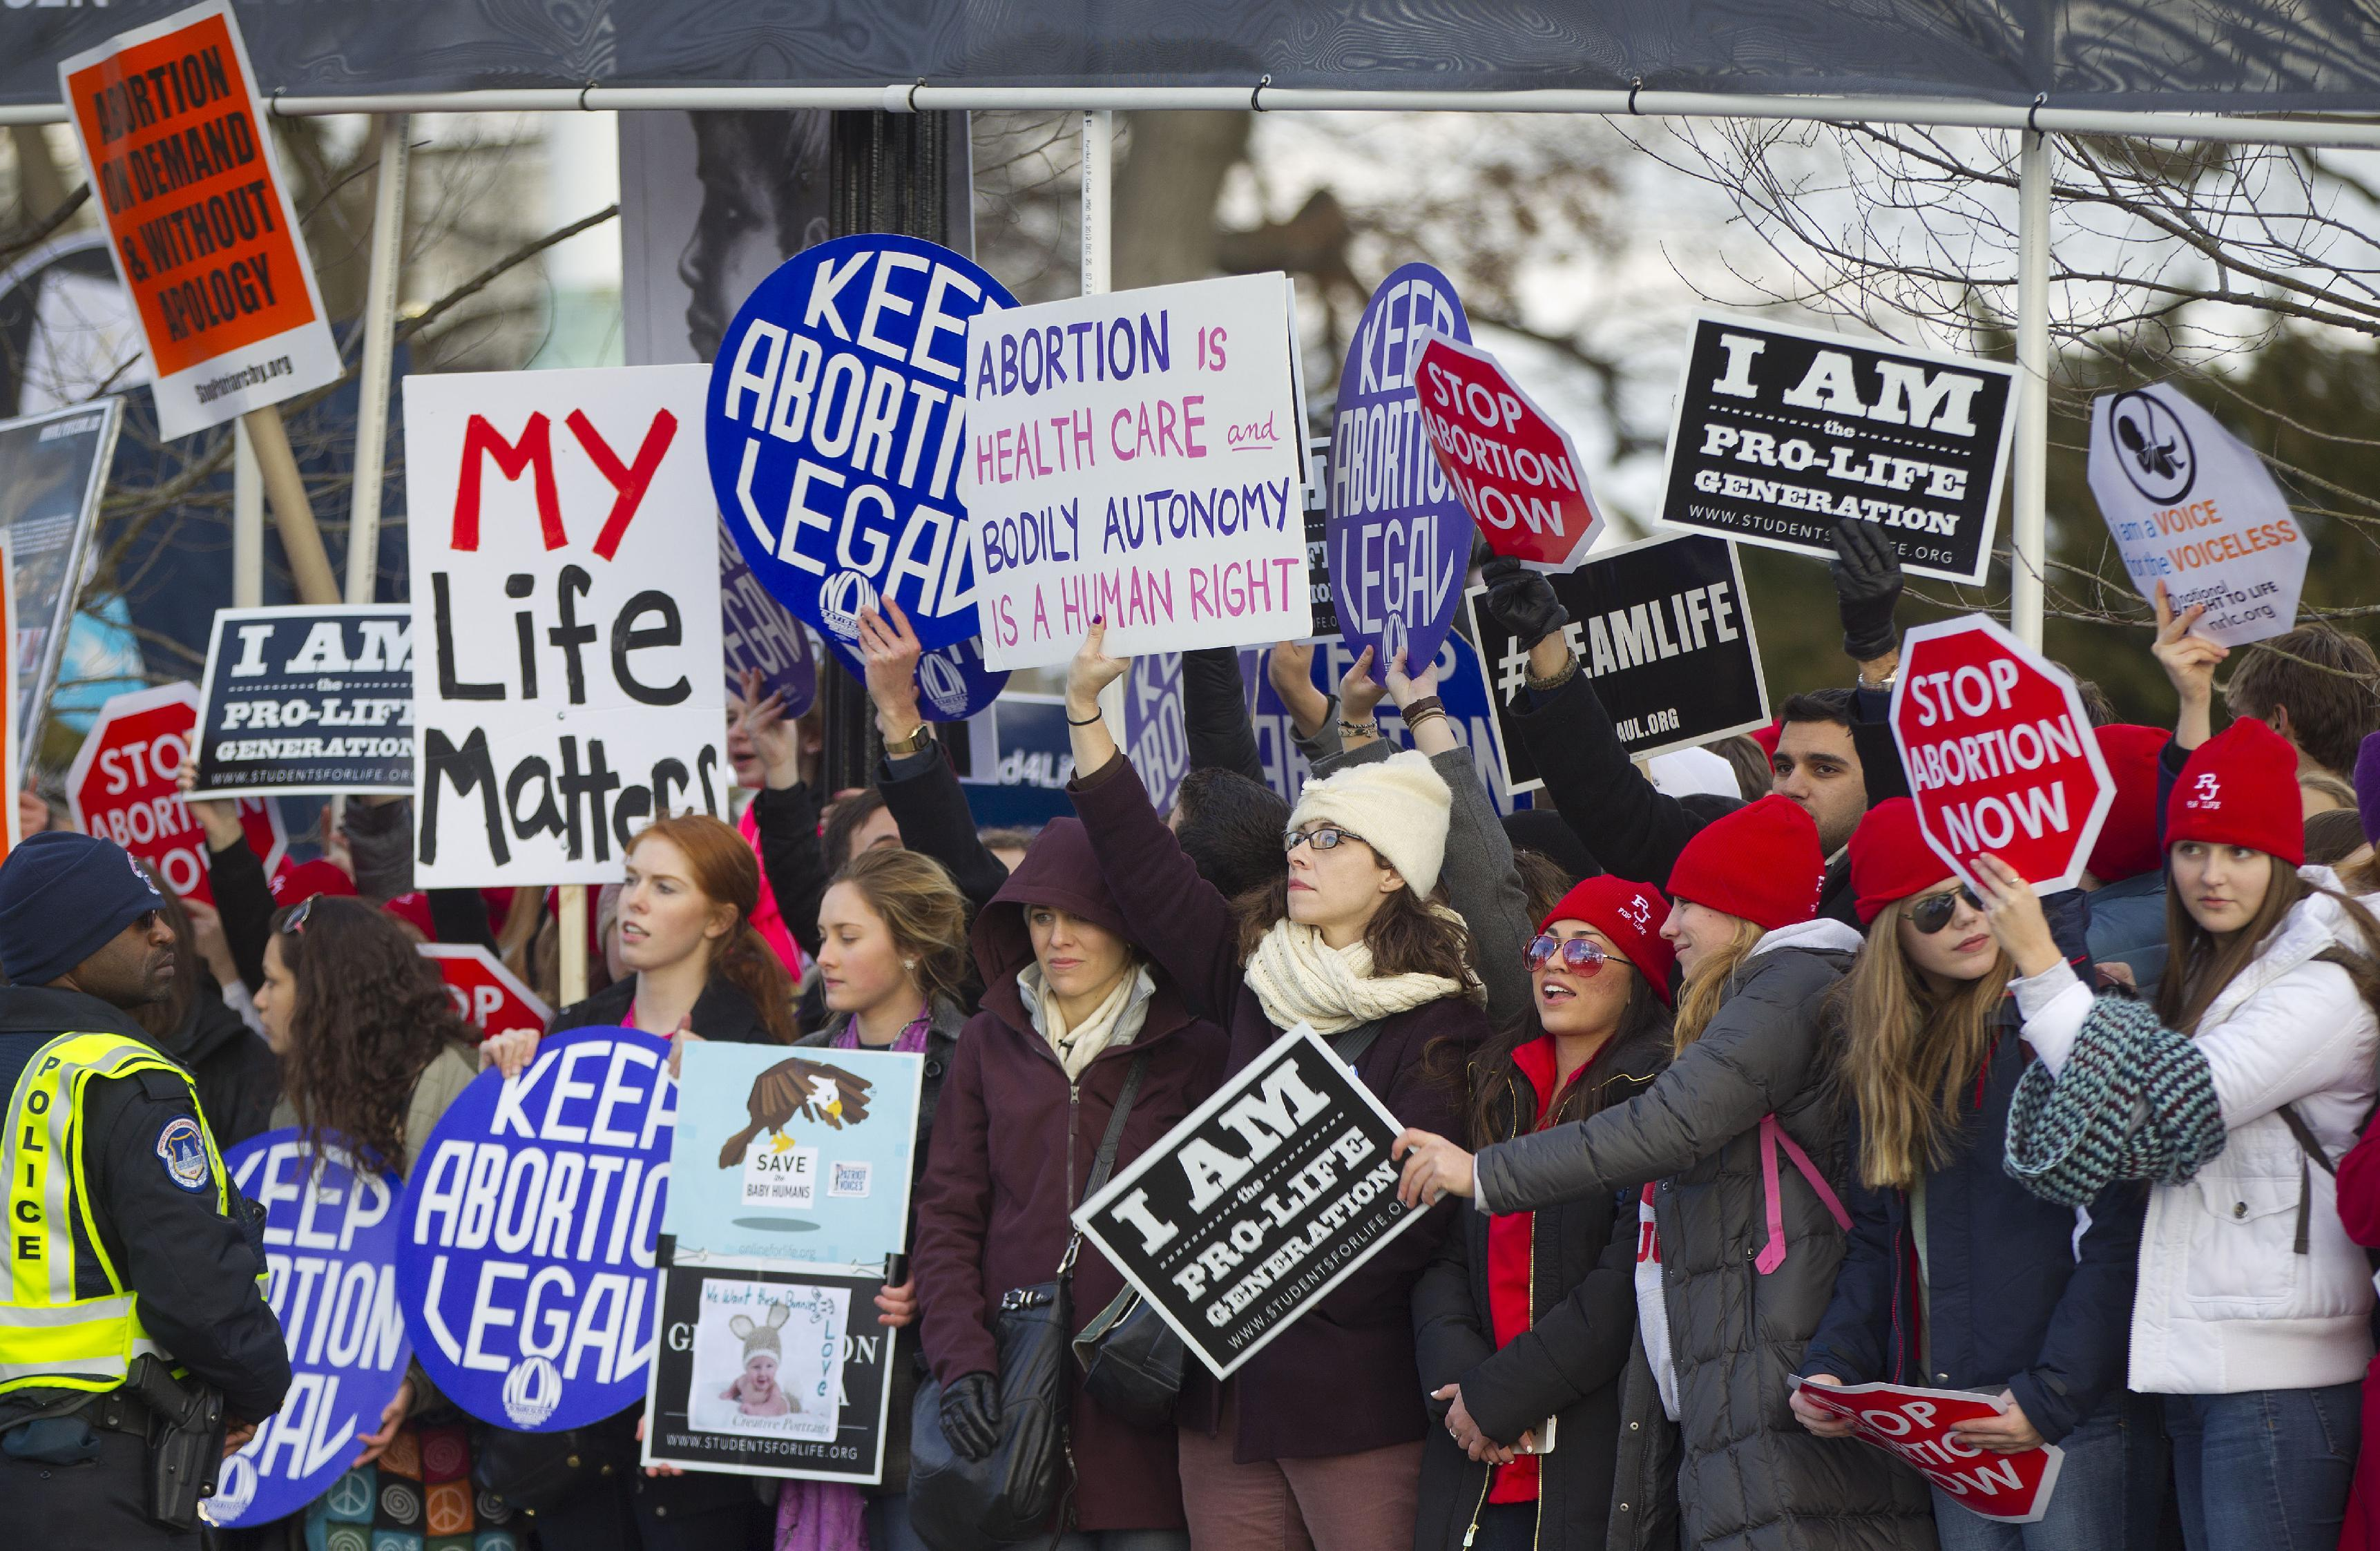 Pro-life and anti-abortion demonstrators converge in front of the Supreme Court in Washington